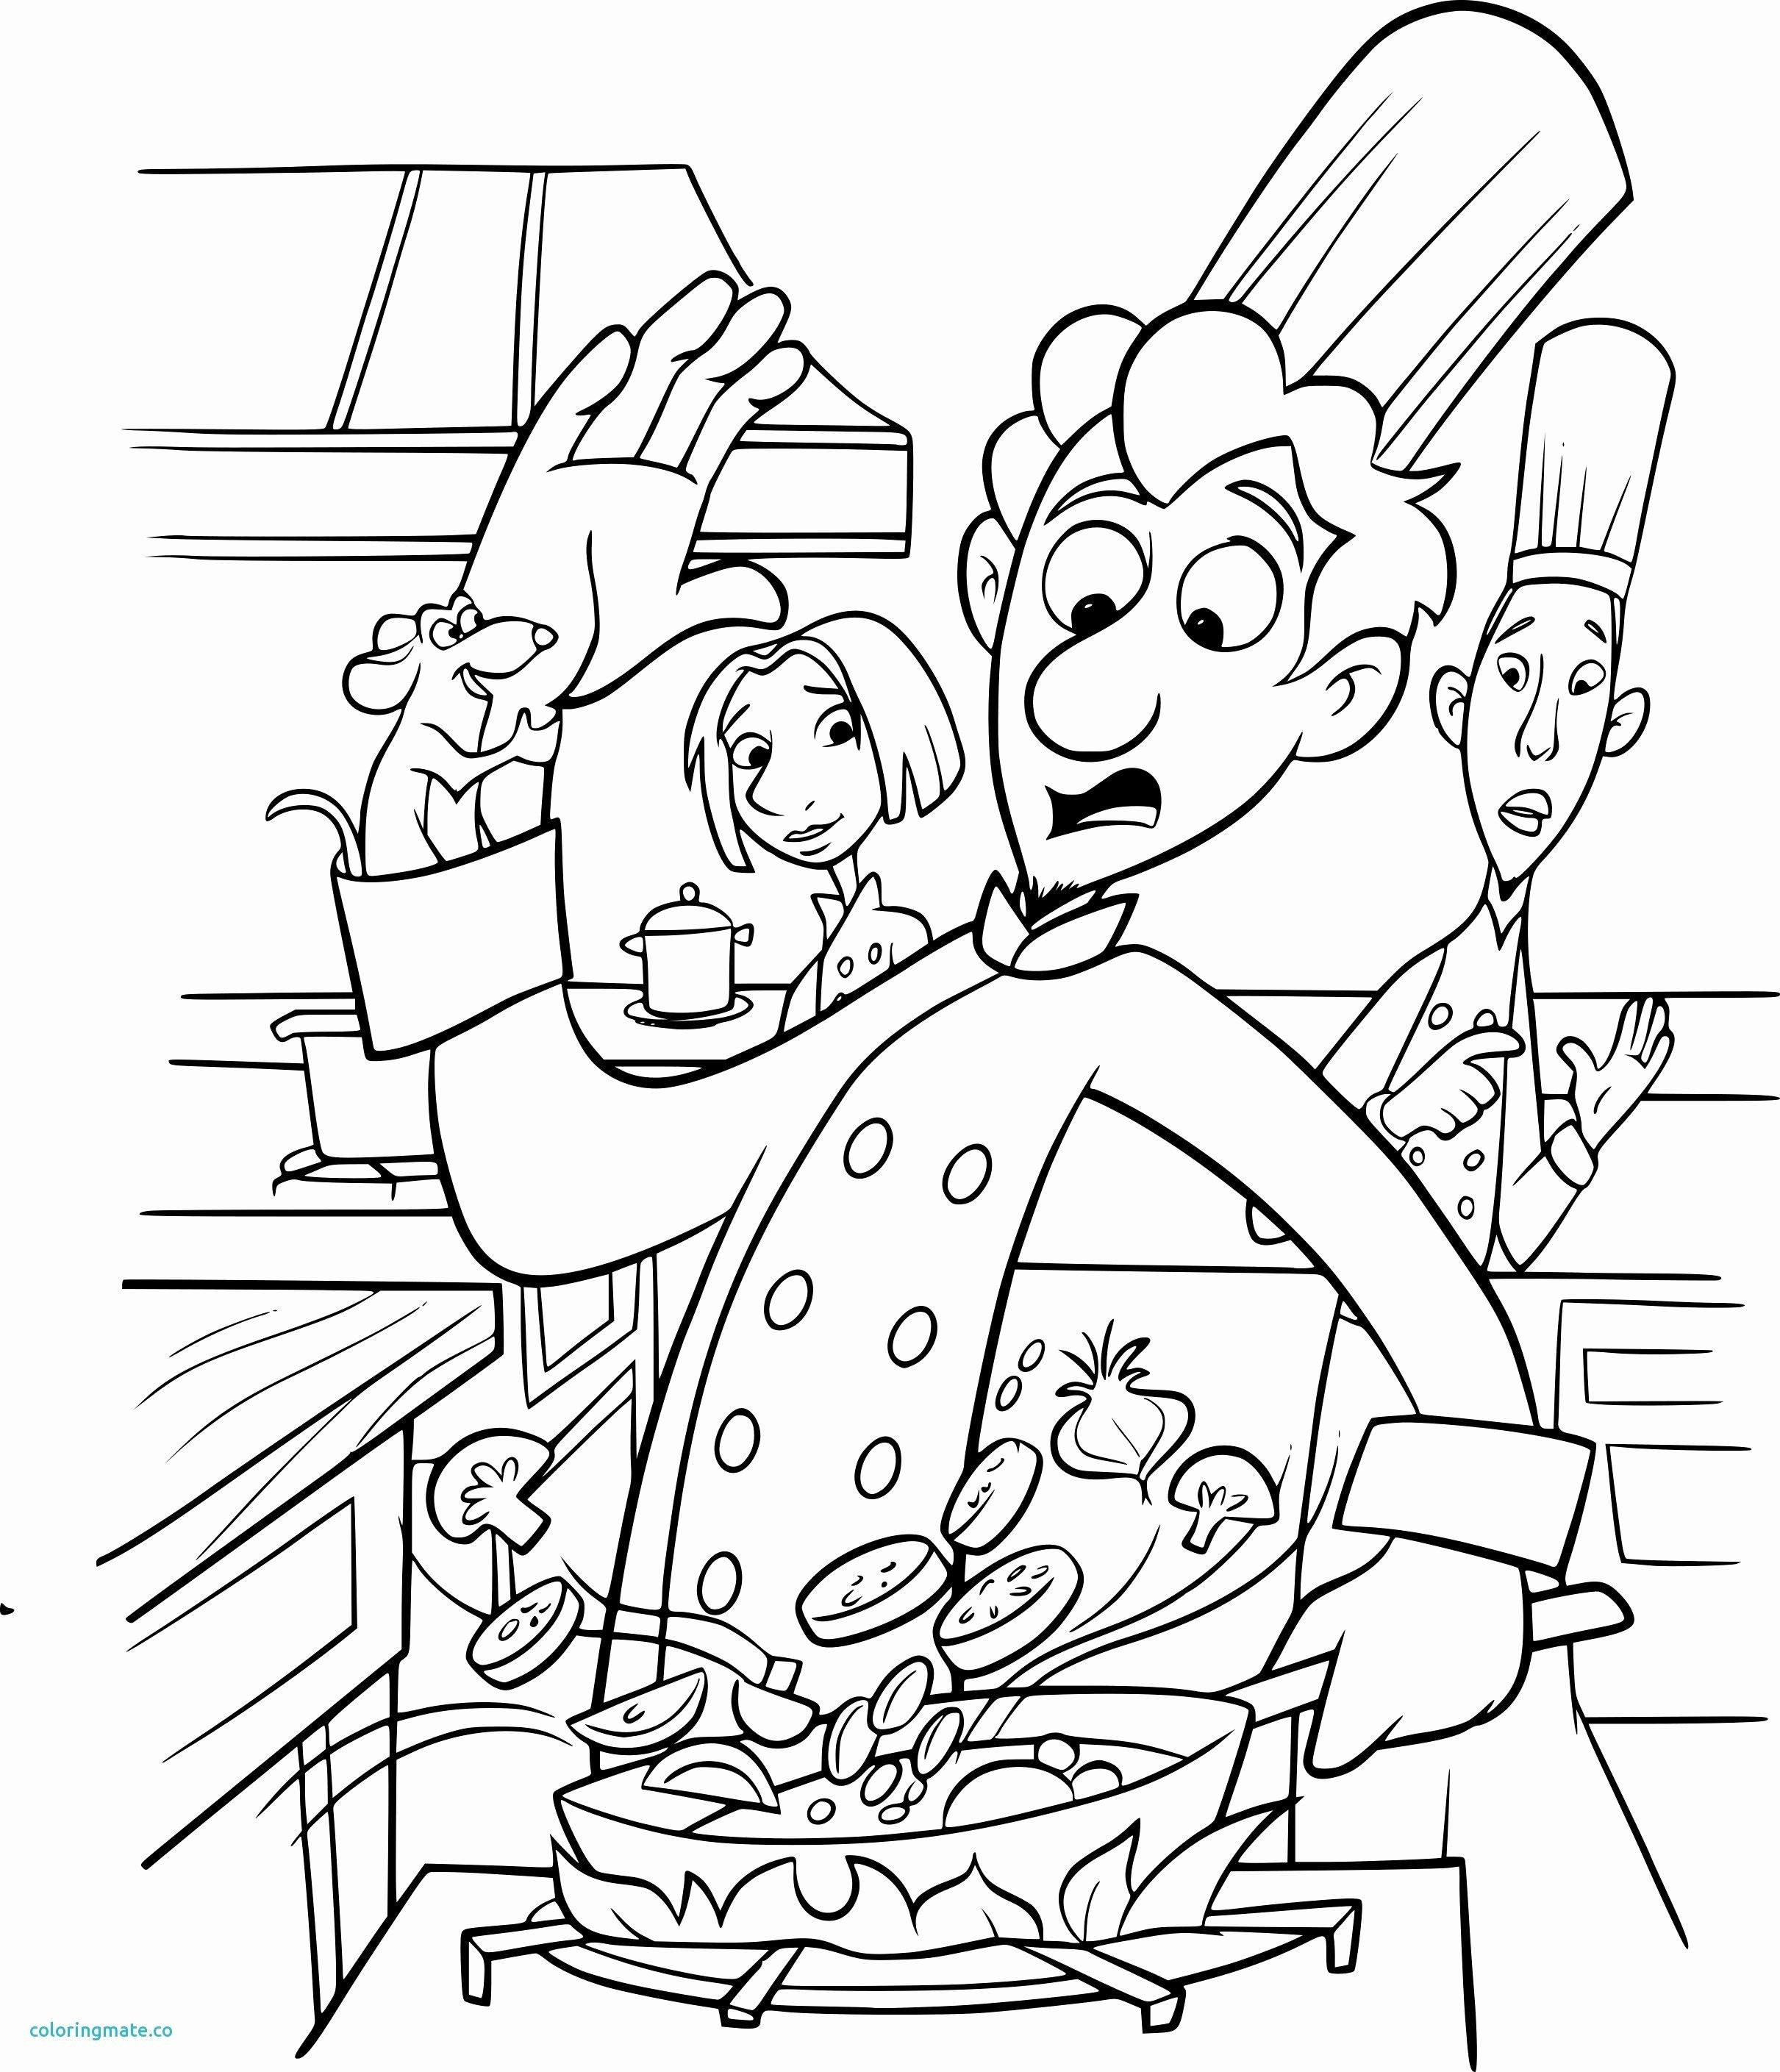 New Coloriage Cinema Coloringpages Coloringpagesforkids Coloringpagesforadult Printableco Unicorn Coloring Pages Free Coloring Pages Crayola Coloring Pages